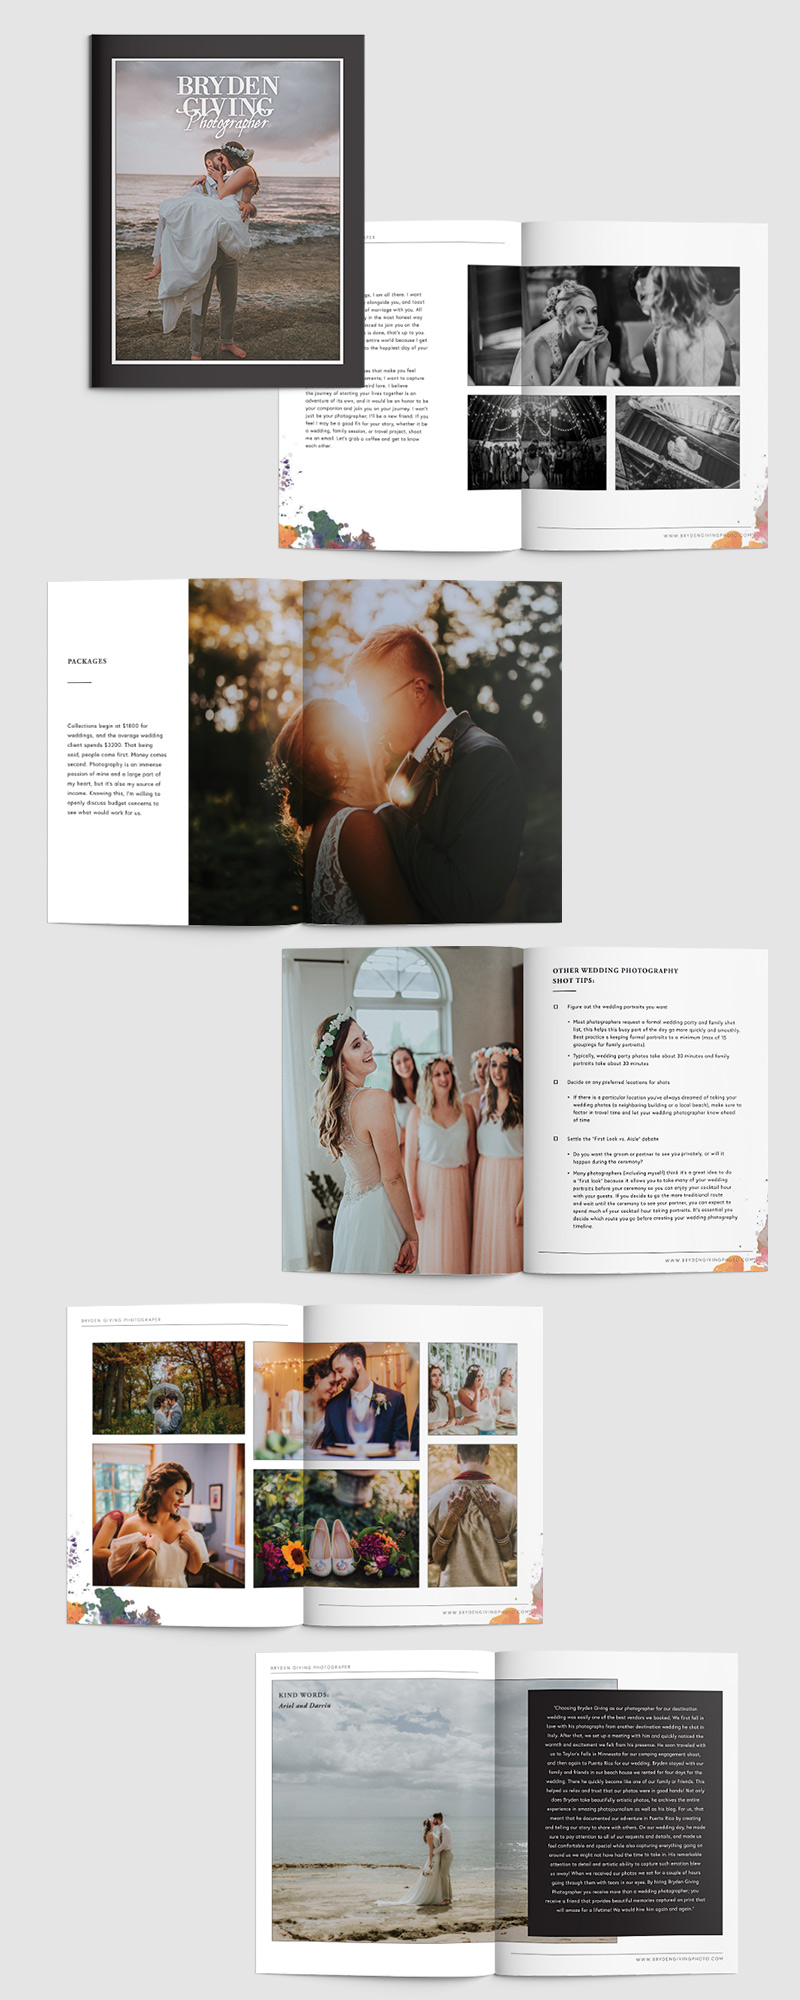 Wedding magazine design for a photographer | Jodi Neufeld Design